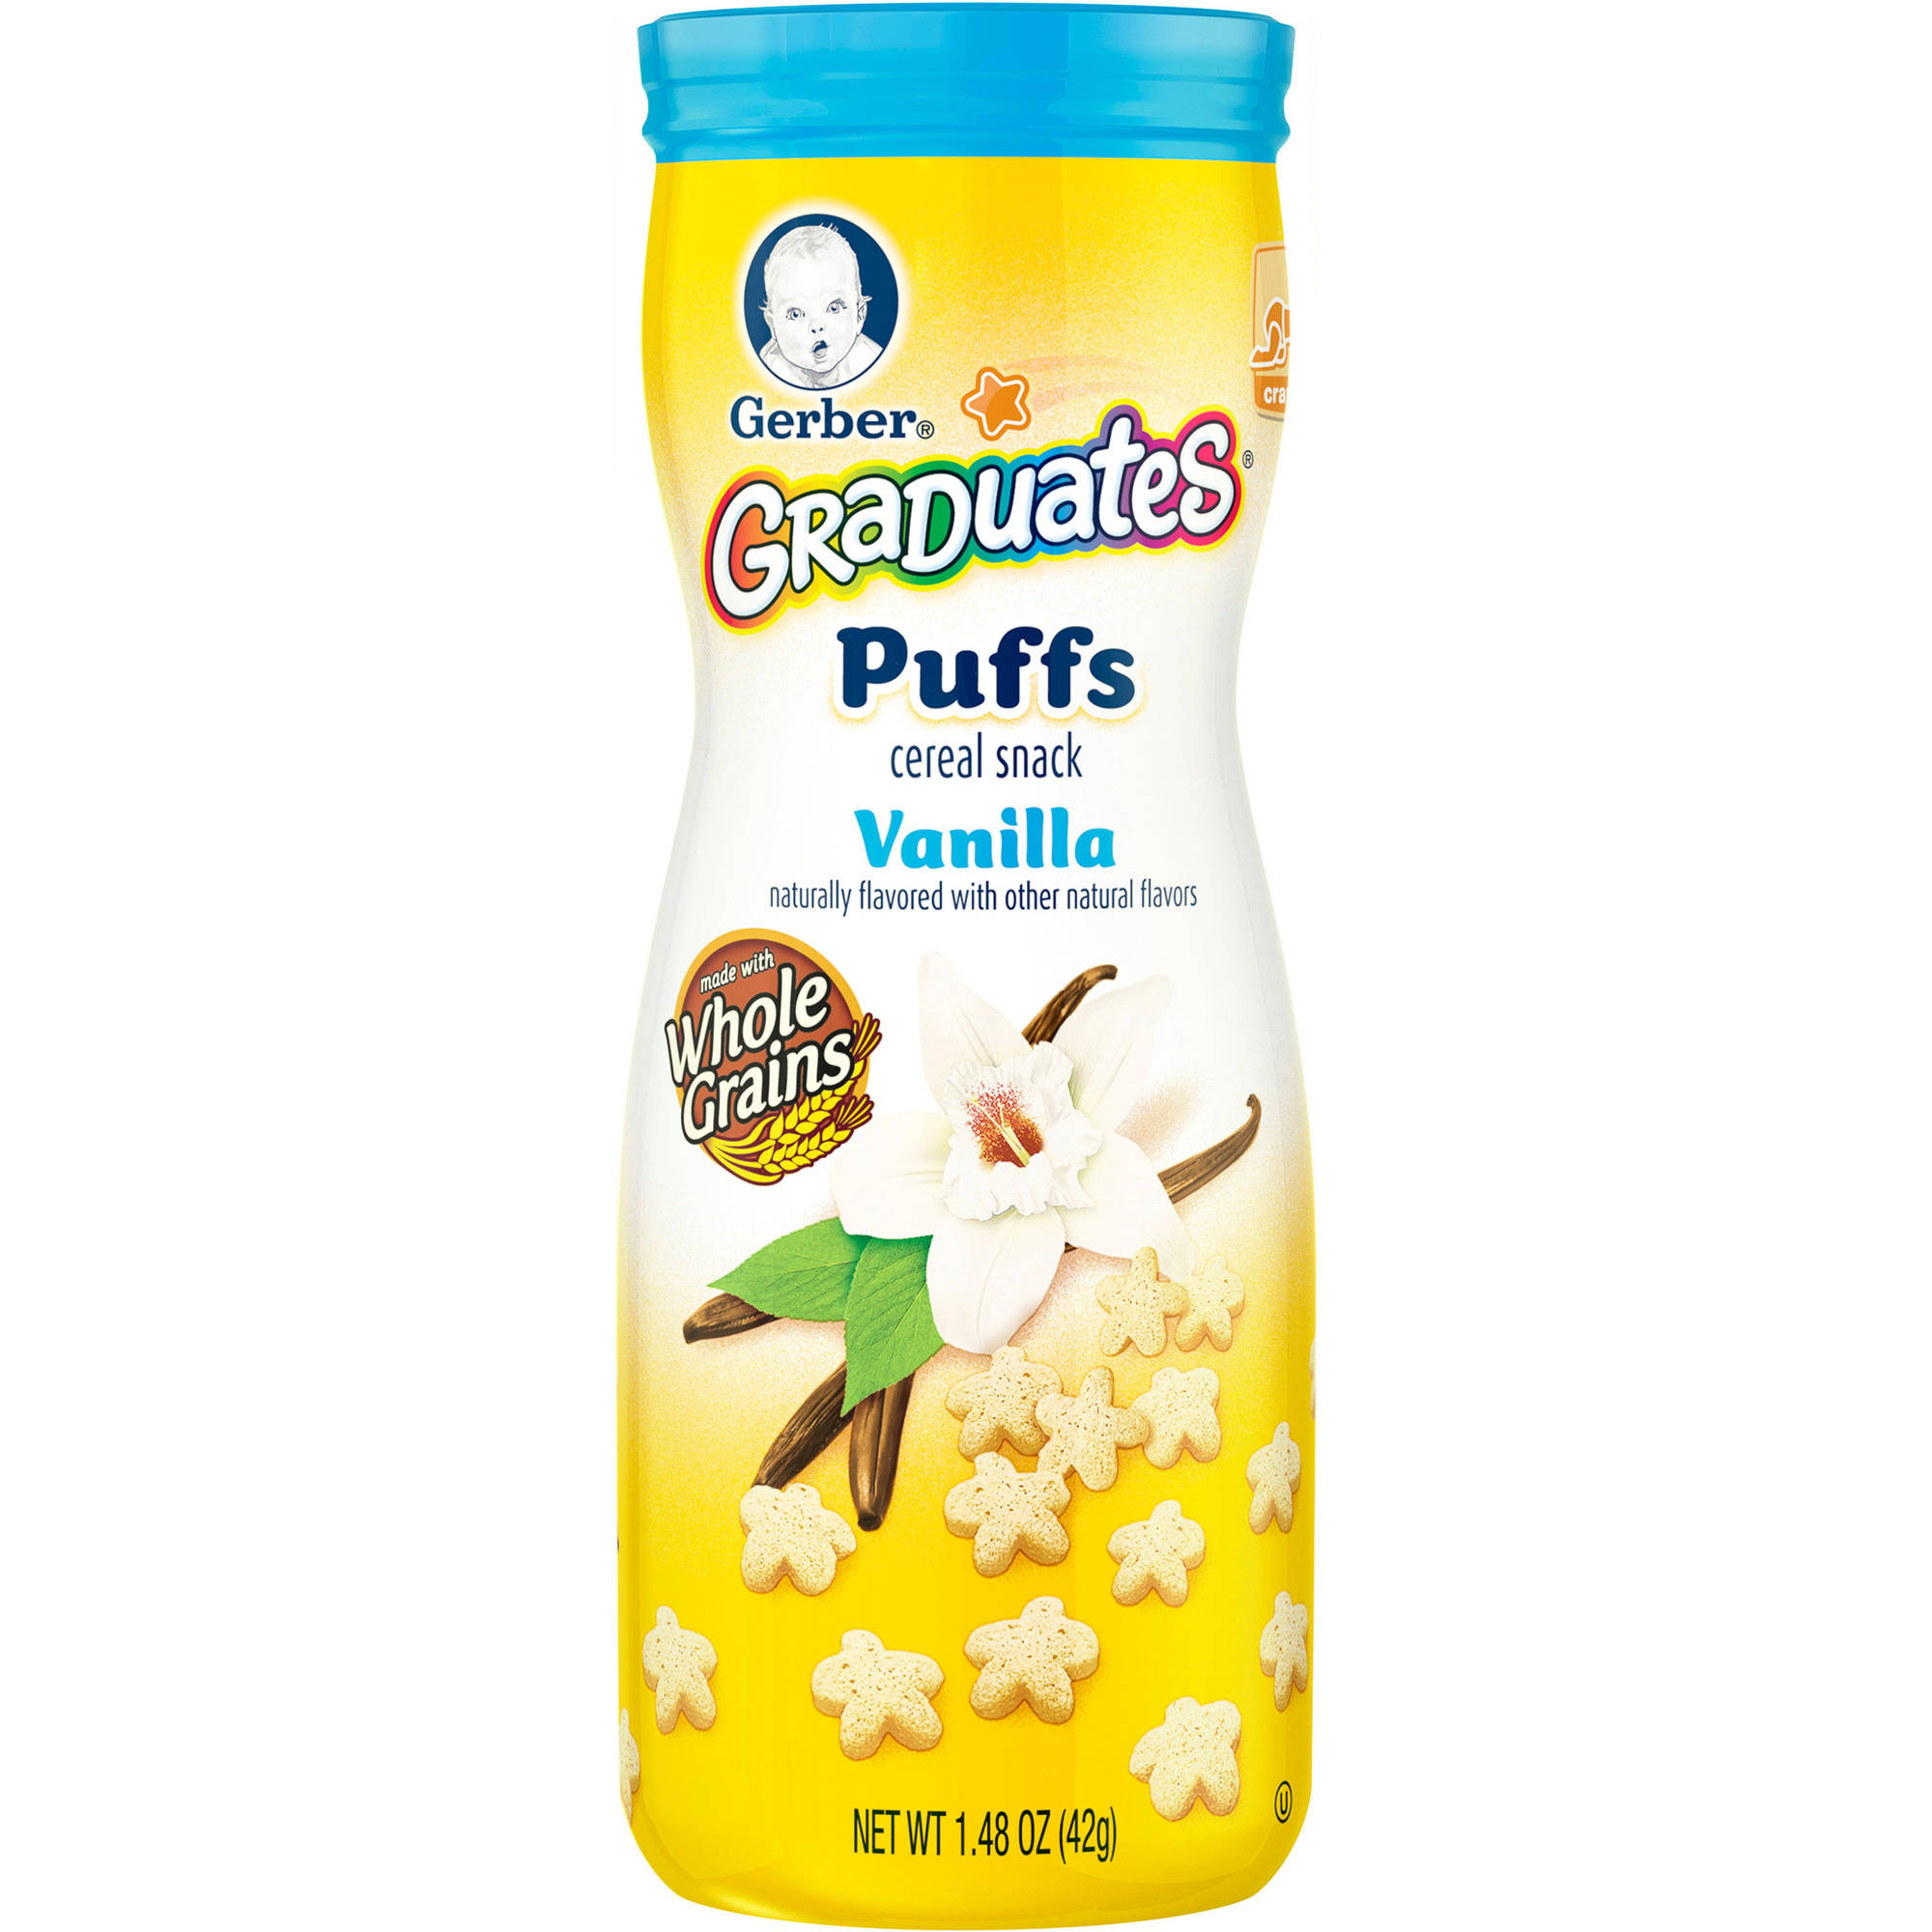 Gerber Graduates Puffs Cereal Snack, Vanilla, Naturally Flavored with Other Natural Flavors, 1.48 Ounce, 6 Count